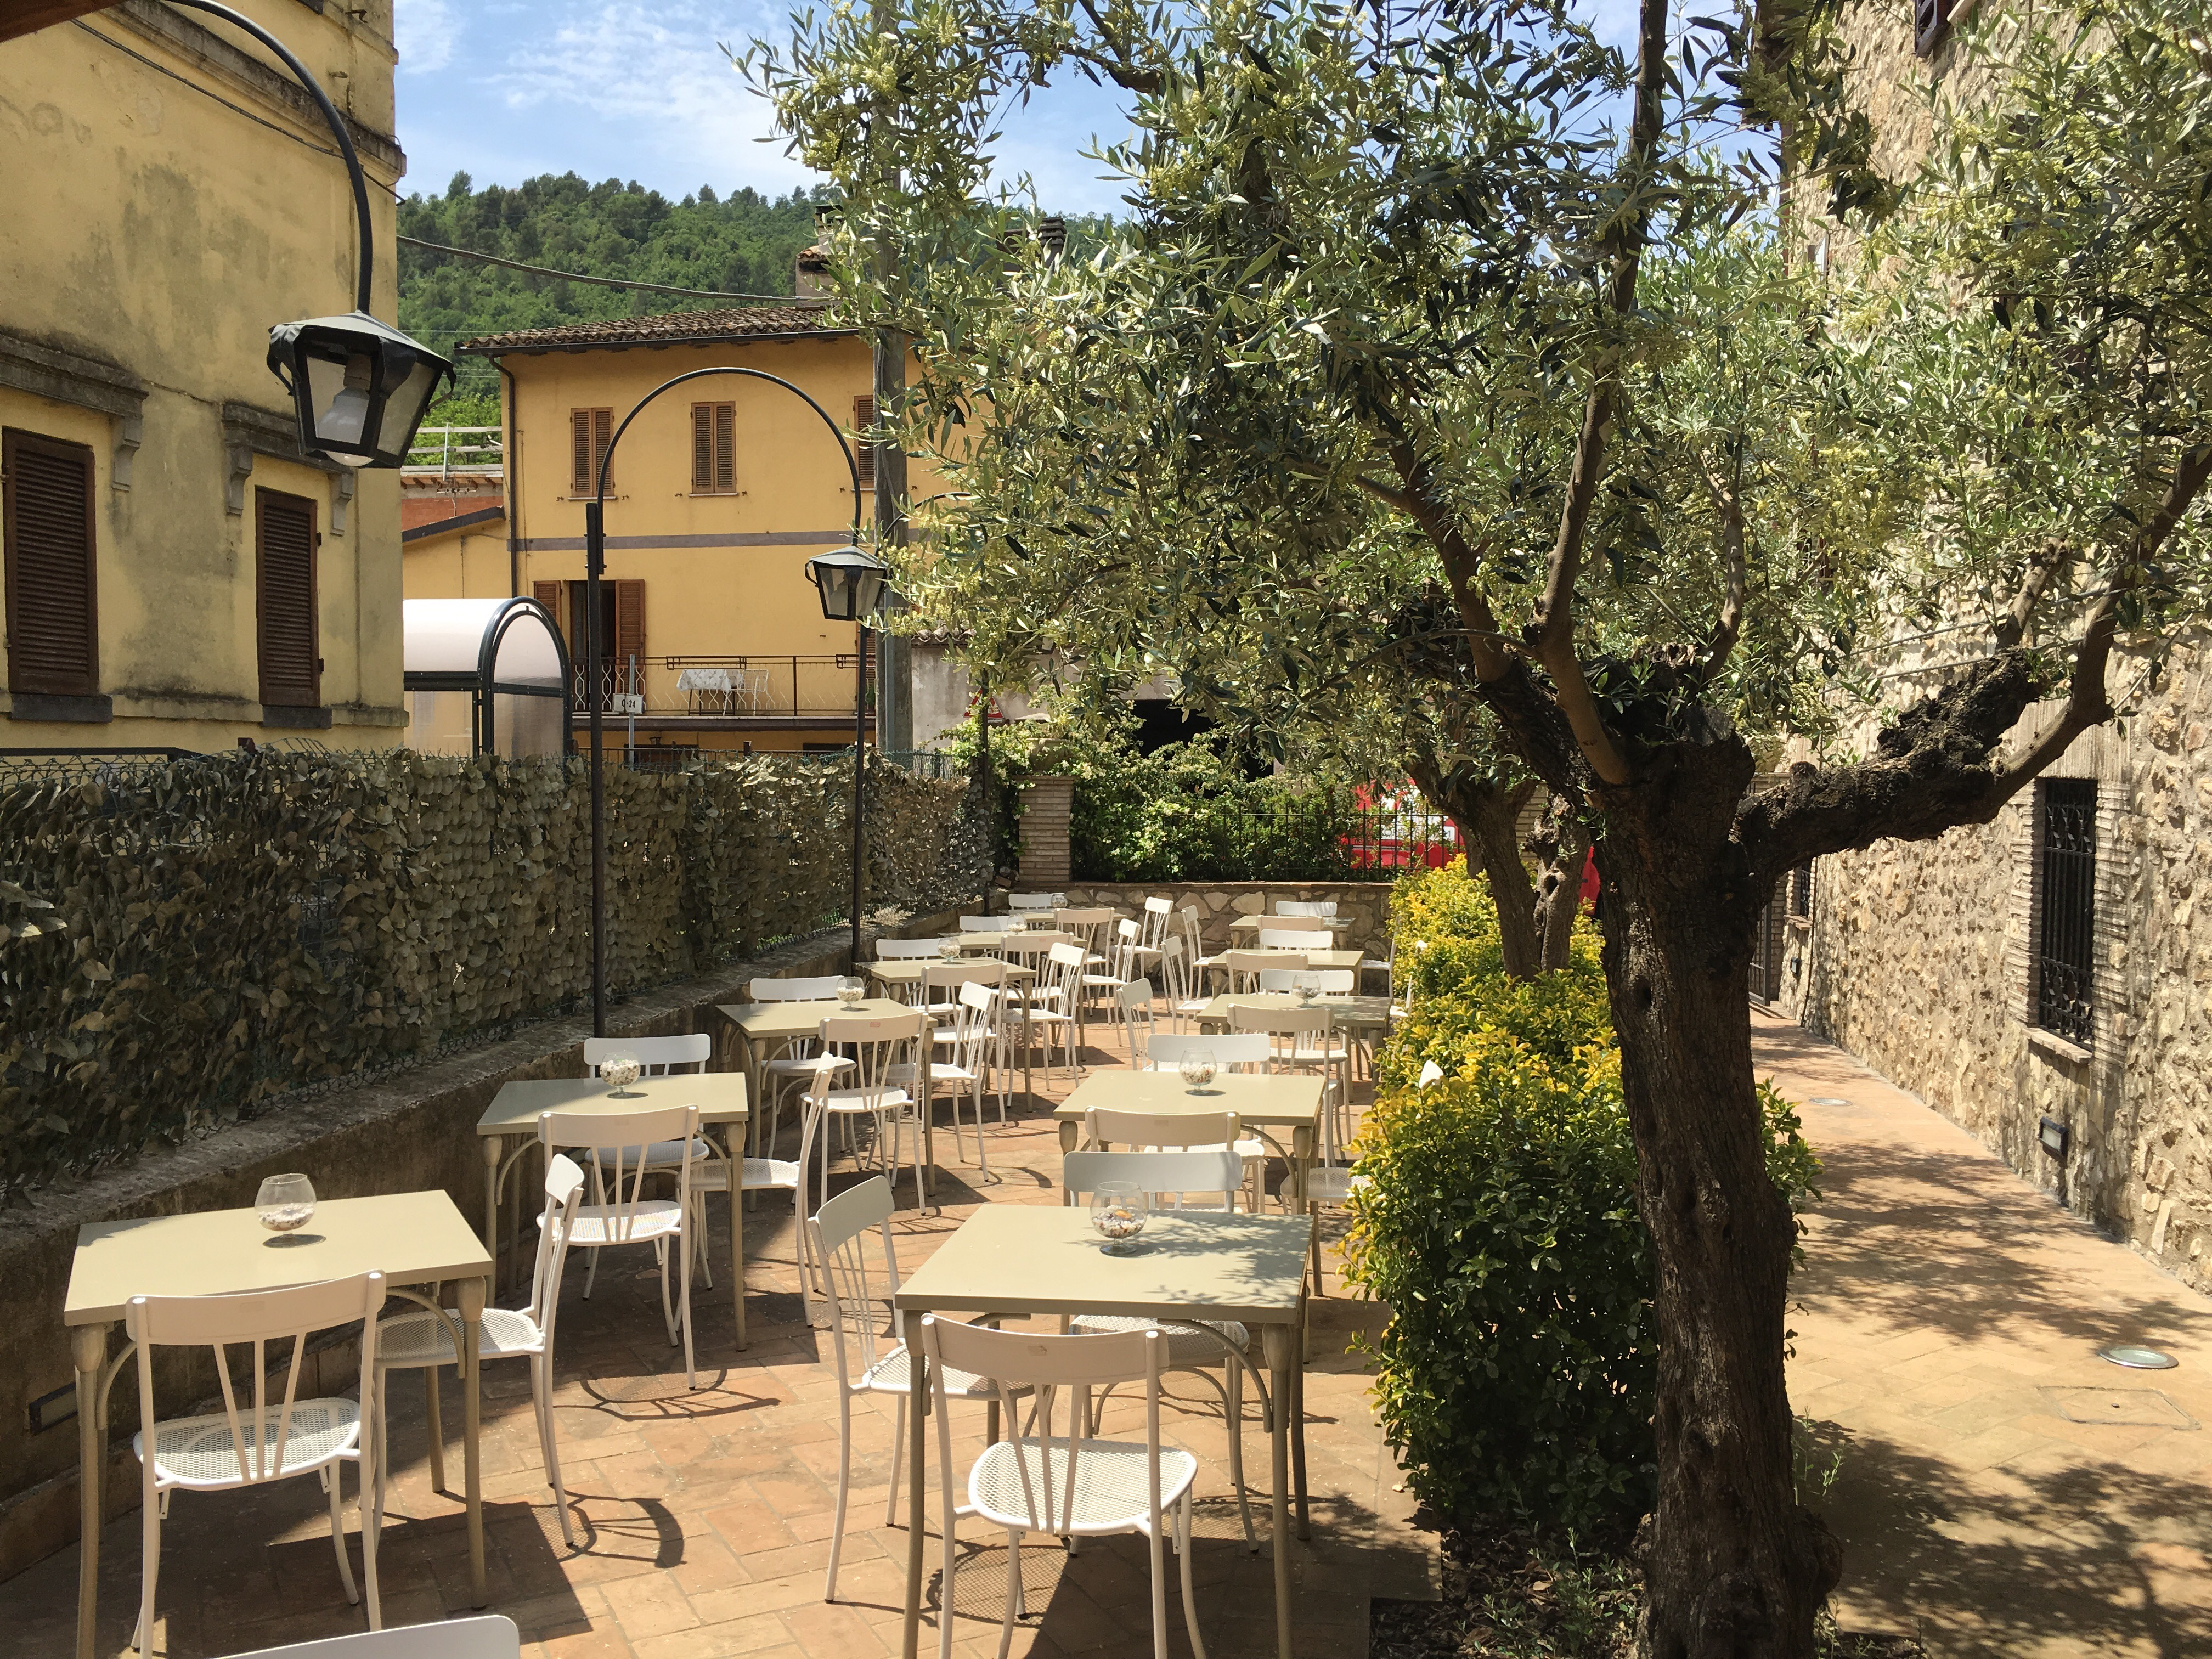 Trattoria-Pizzeria-Margherita Group Reservations ...